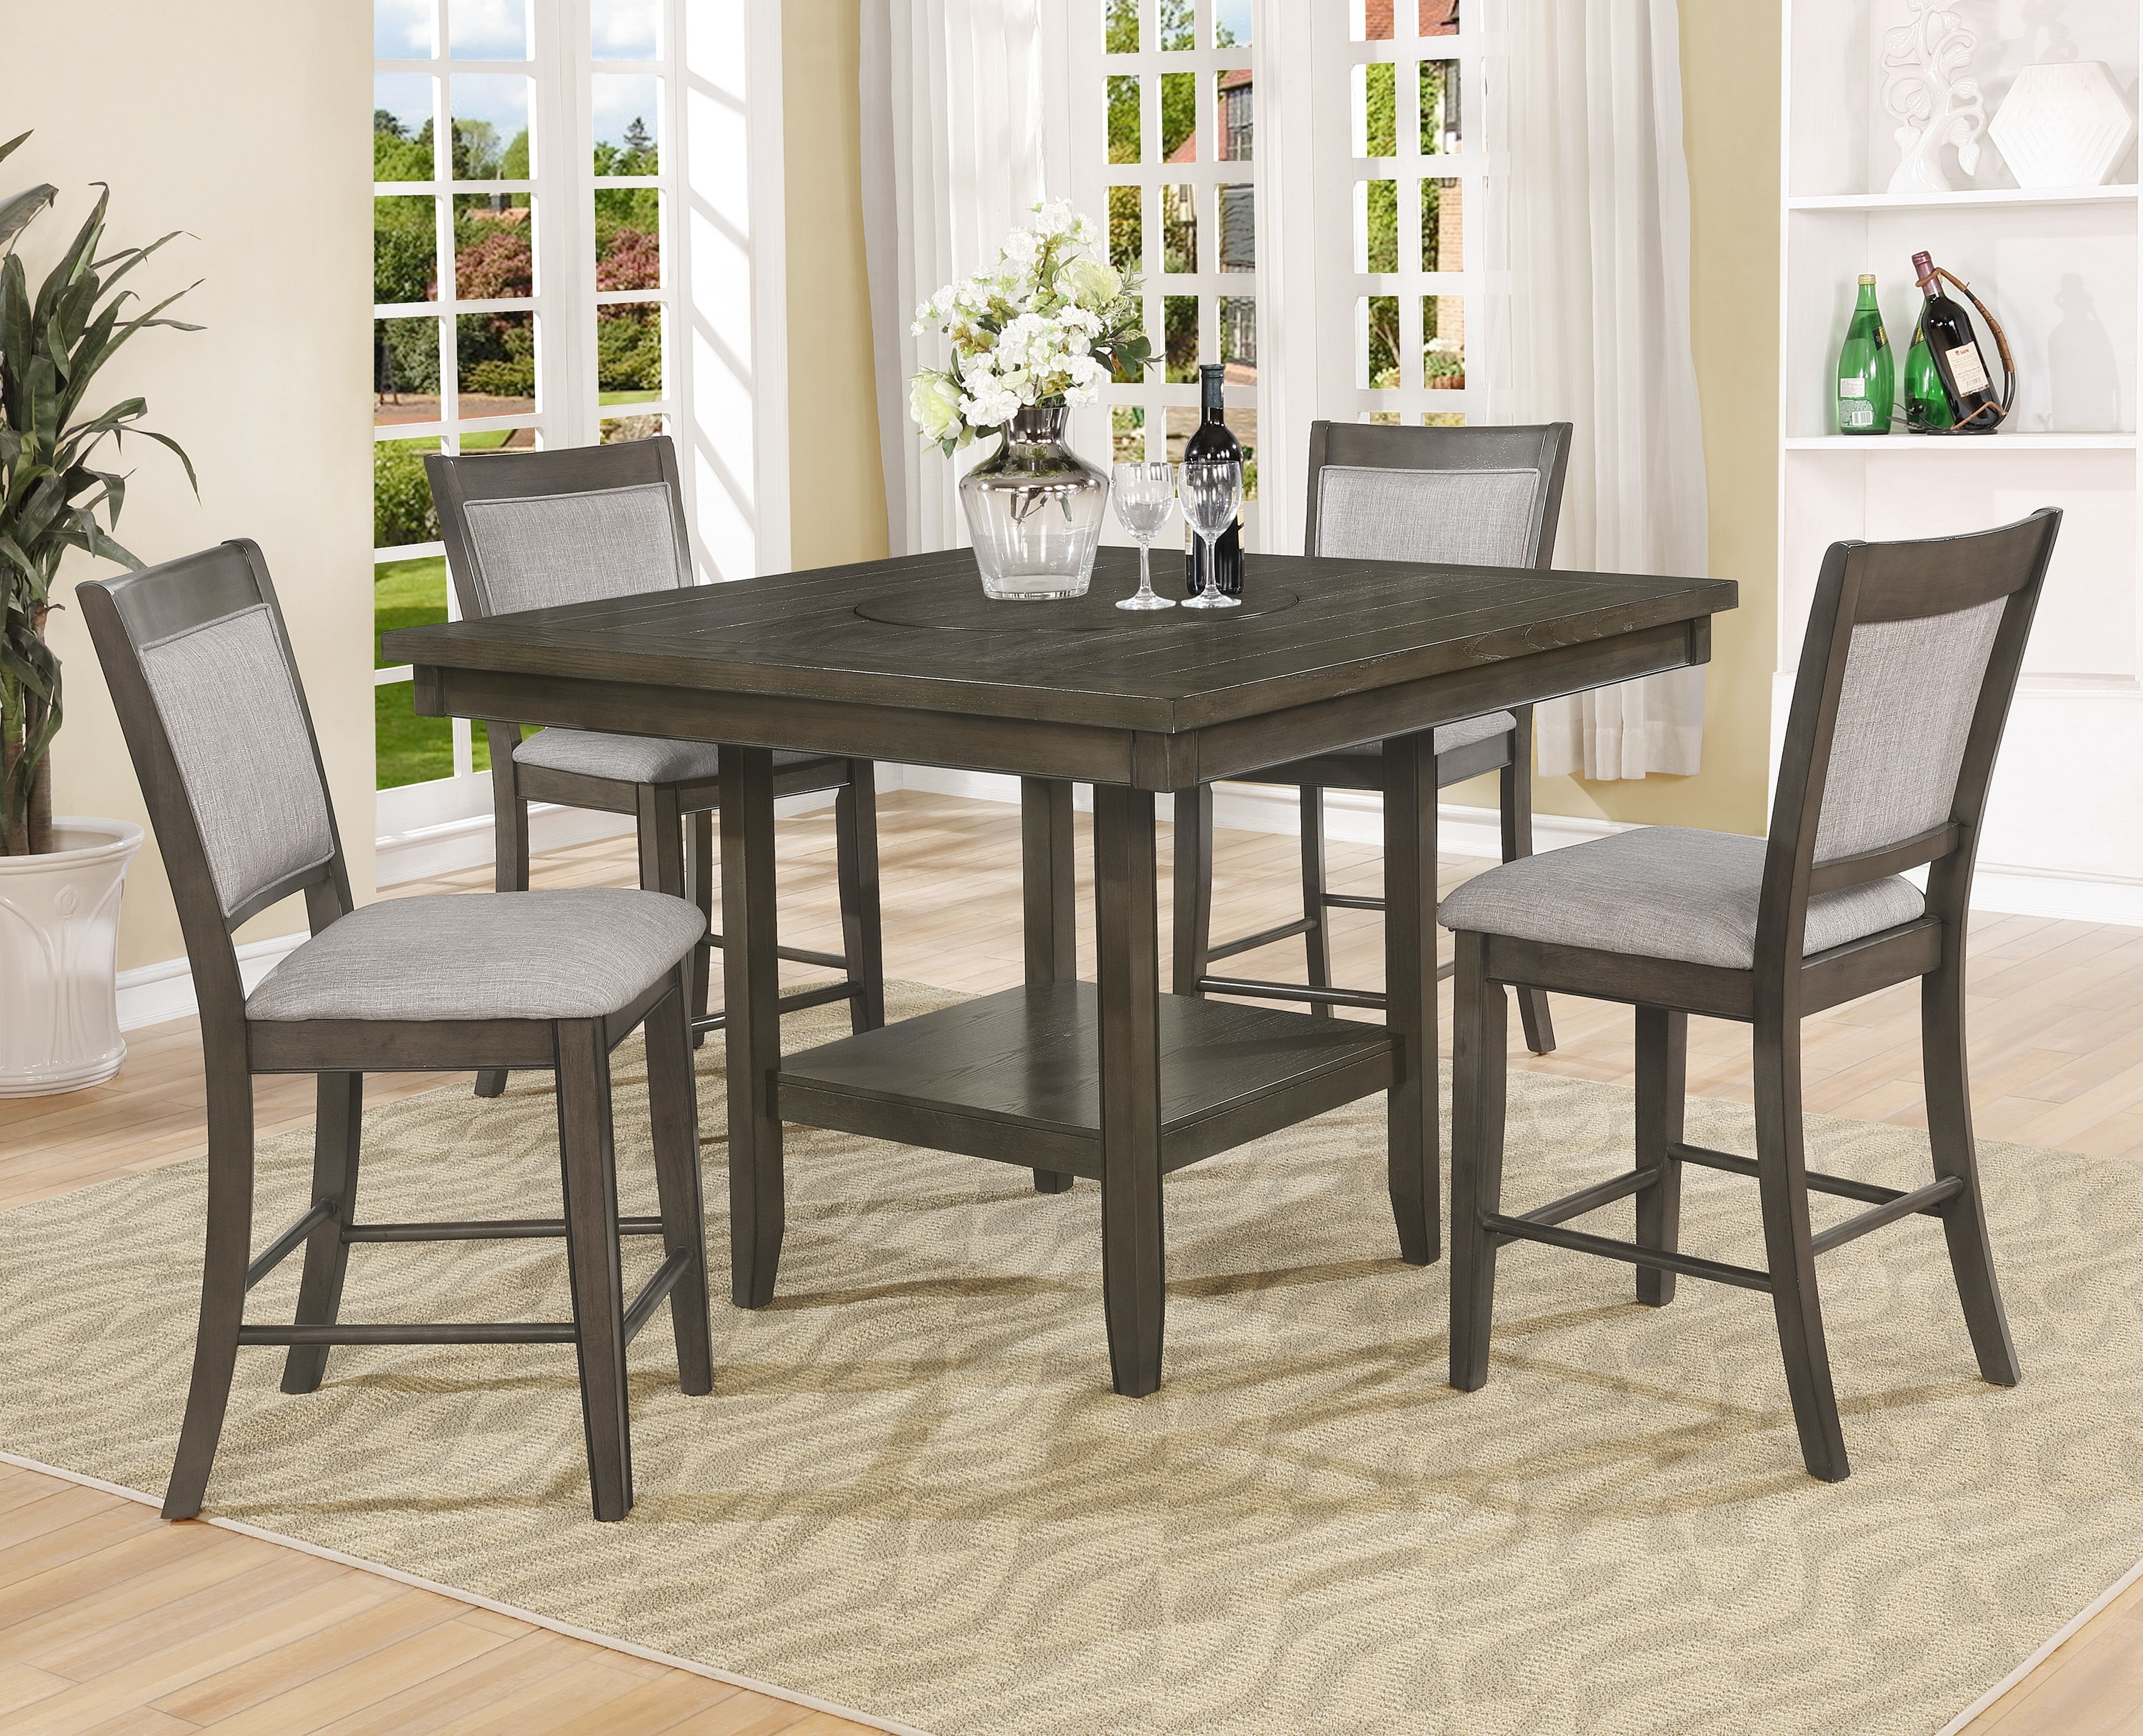 Gracie Oaks Briella 5 Piece Counter Height Dining Set | Wayfair With Most Popular Parquet 7 Piece Dining Sets (View 16 of 20)